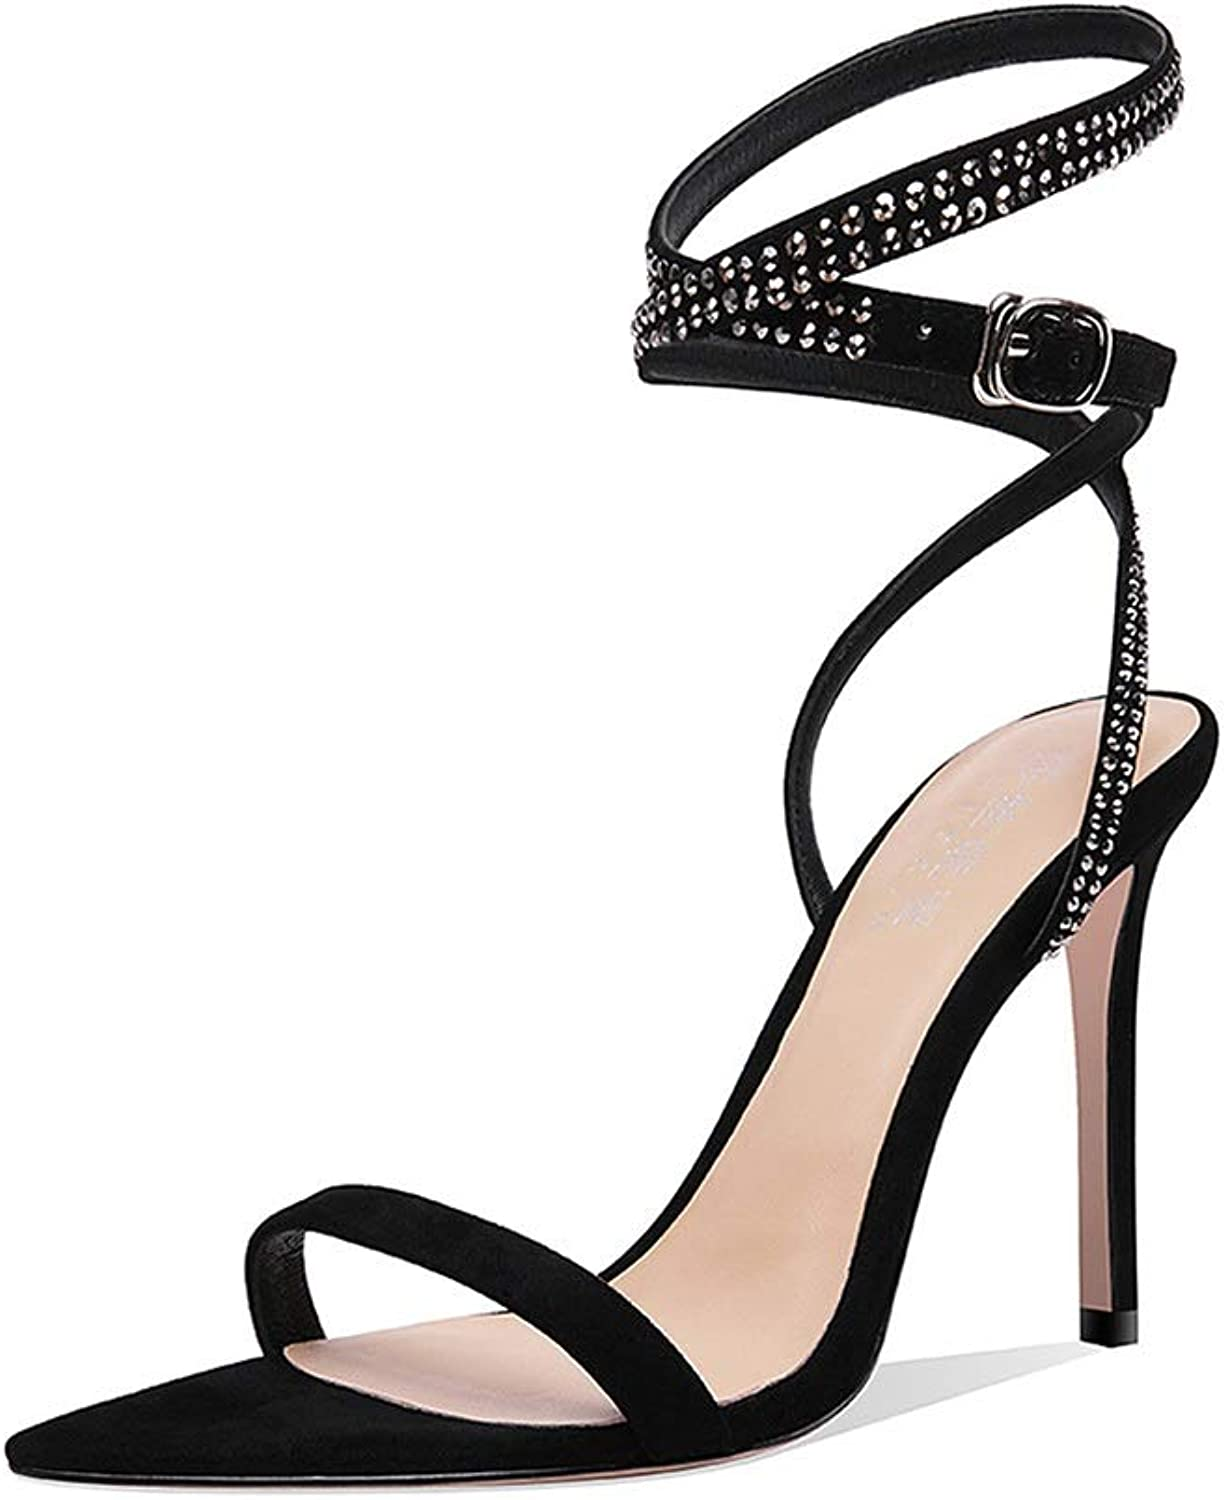 Sandals Heeled Sandals High Heels Summer Open Toe Stiletto Sandals Party Word with Women's shoes, with A Height of 9.5cm (color   Black, Size   34 US4-4.5)